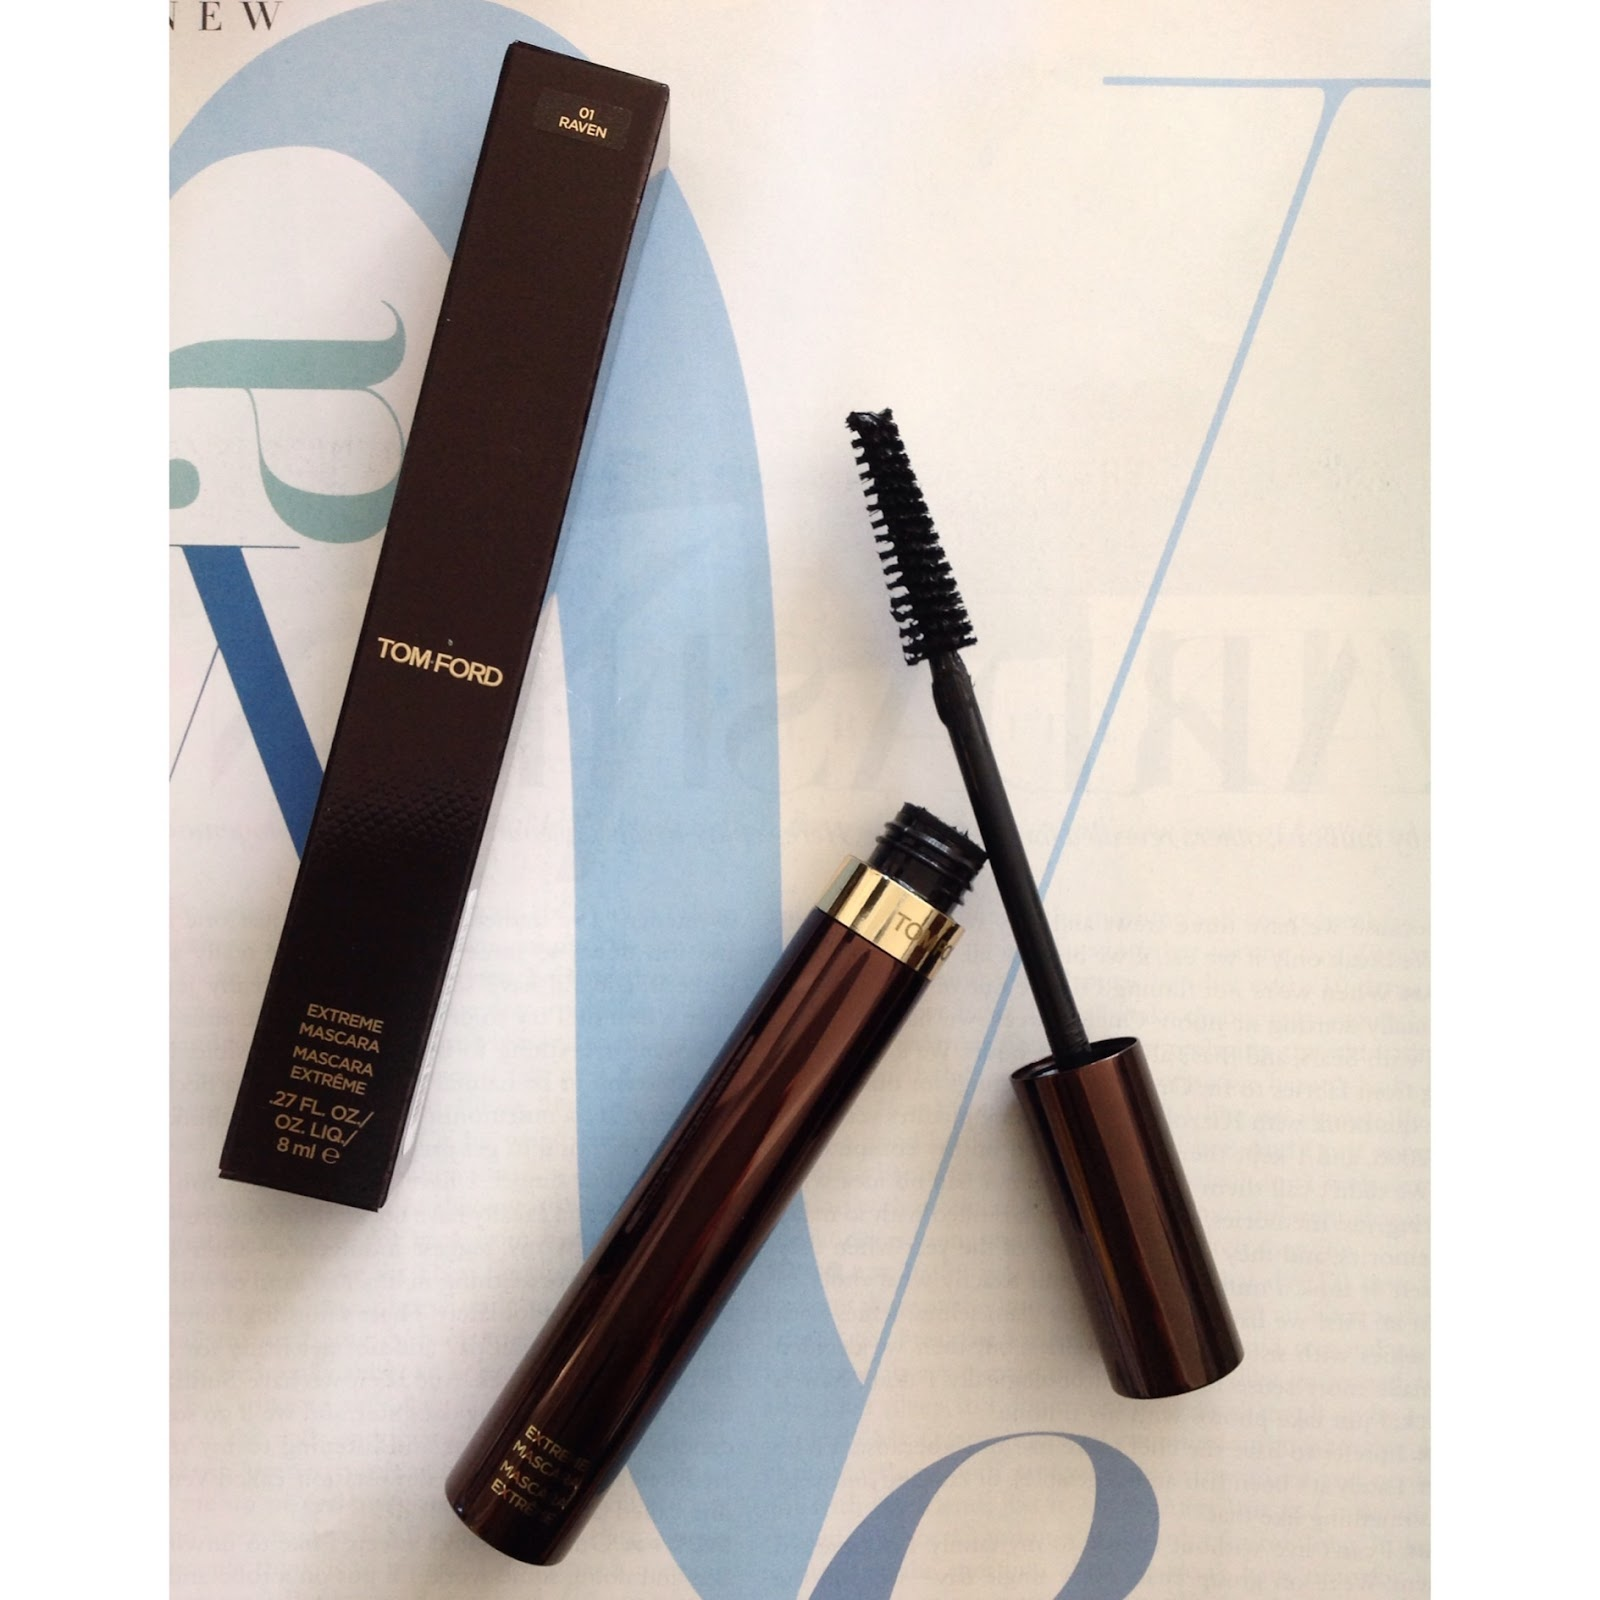 8c529e3df45 Tom Ford Extreme Mascara in Raven | lucinda freya | Bloglovin'